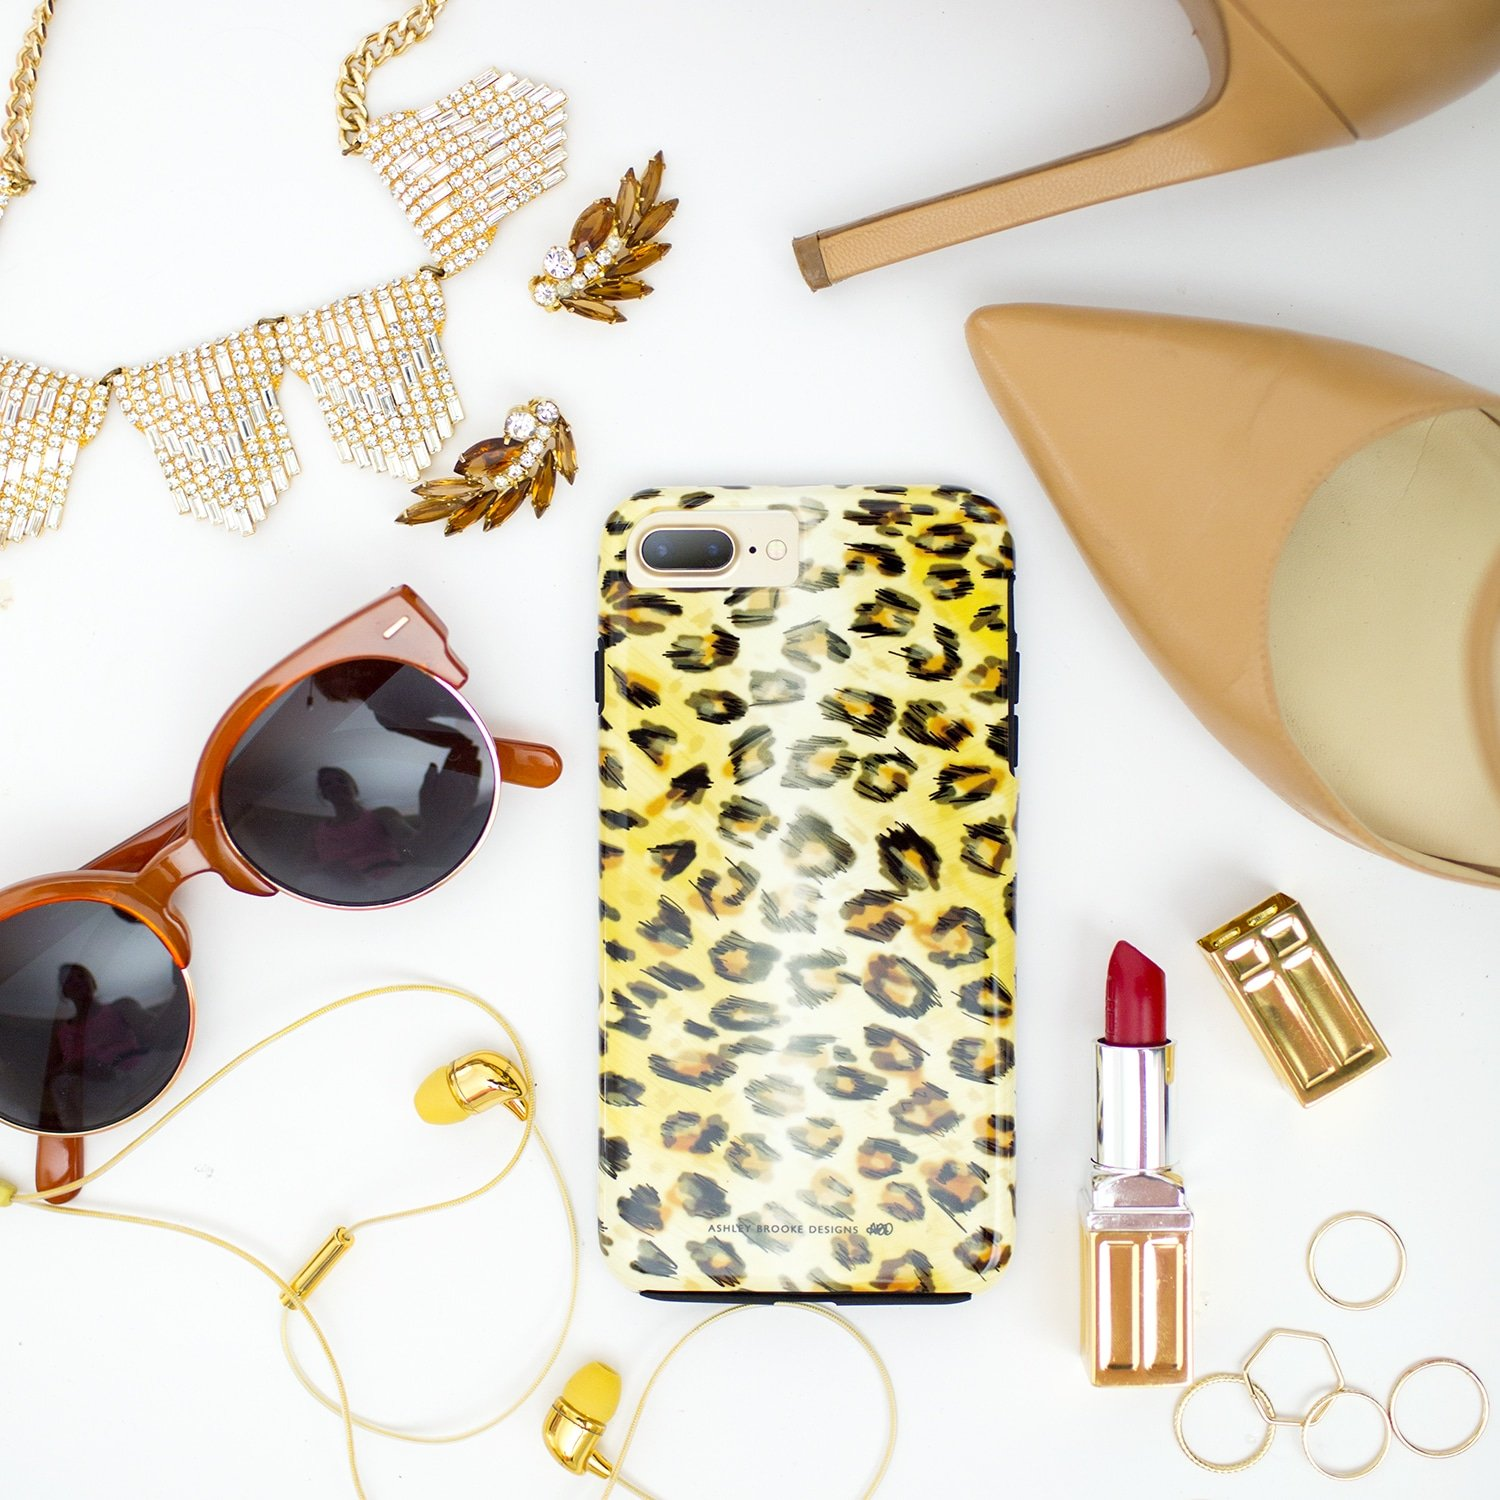 Ashley Brooke Designs Hand Illustrated Leopard Phone Cases | ashleybrookedesigns.com